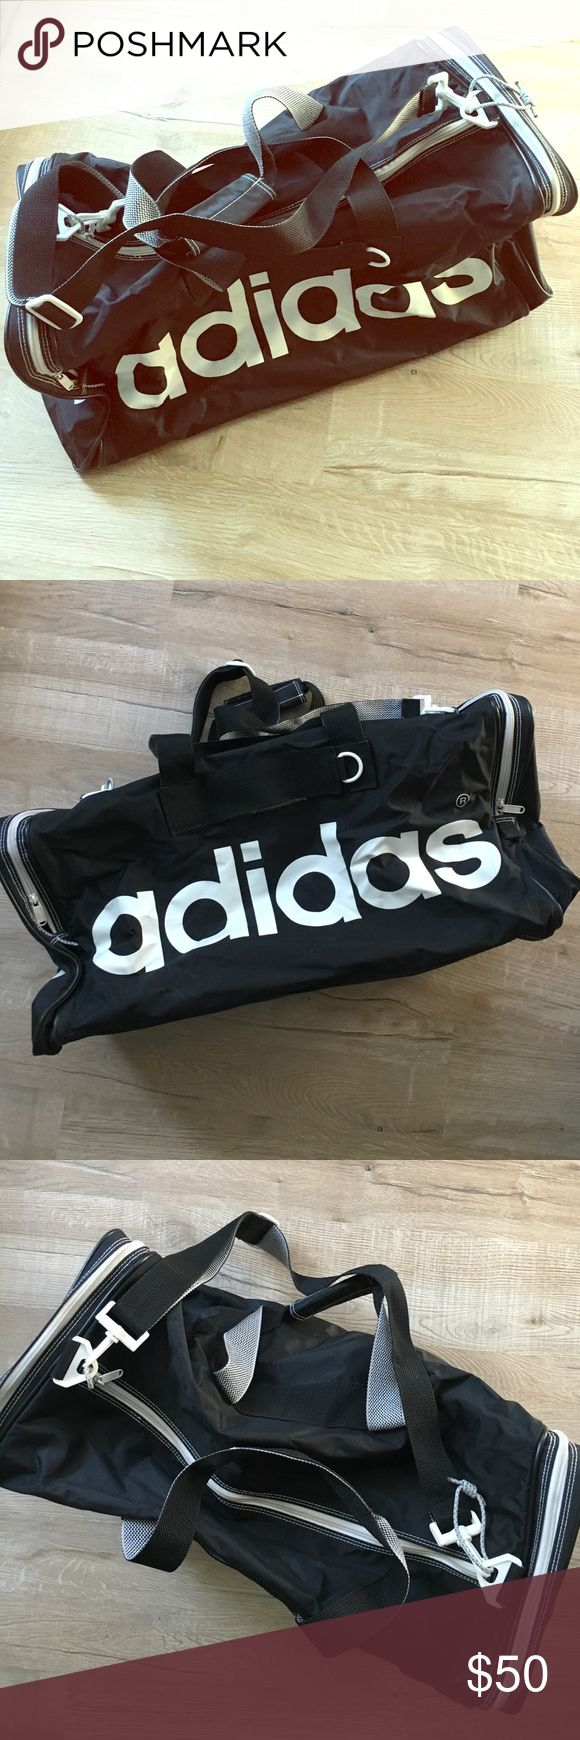 Retro Adidas soccer bag in excellent condition Soccer bag with retro style in great condition. Some small signs of wear but very little. Large center pocket and two side pockets that fit shoes or coat. Shoulder strap and two hand straps to carry. Adidas Bags Travel Bags